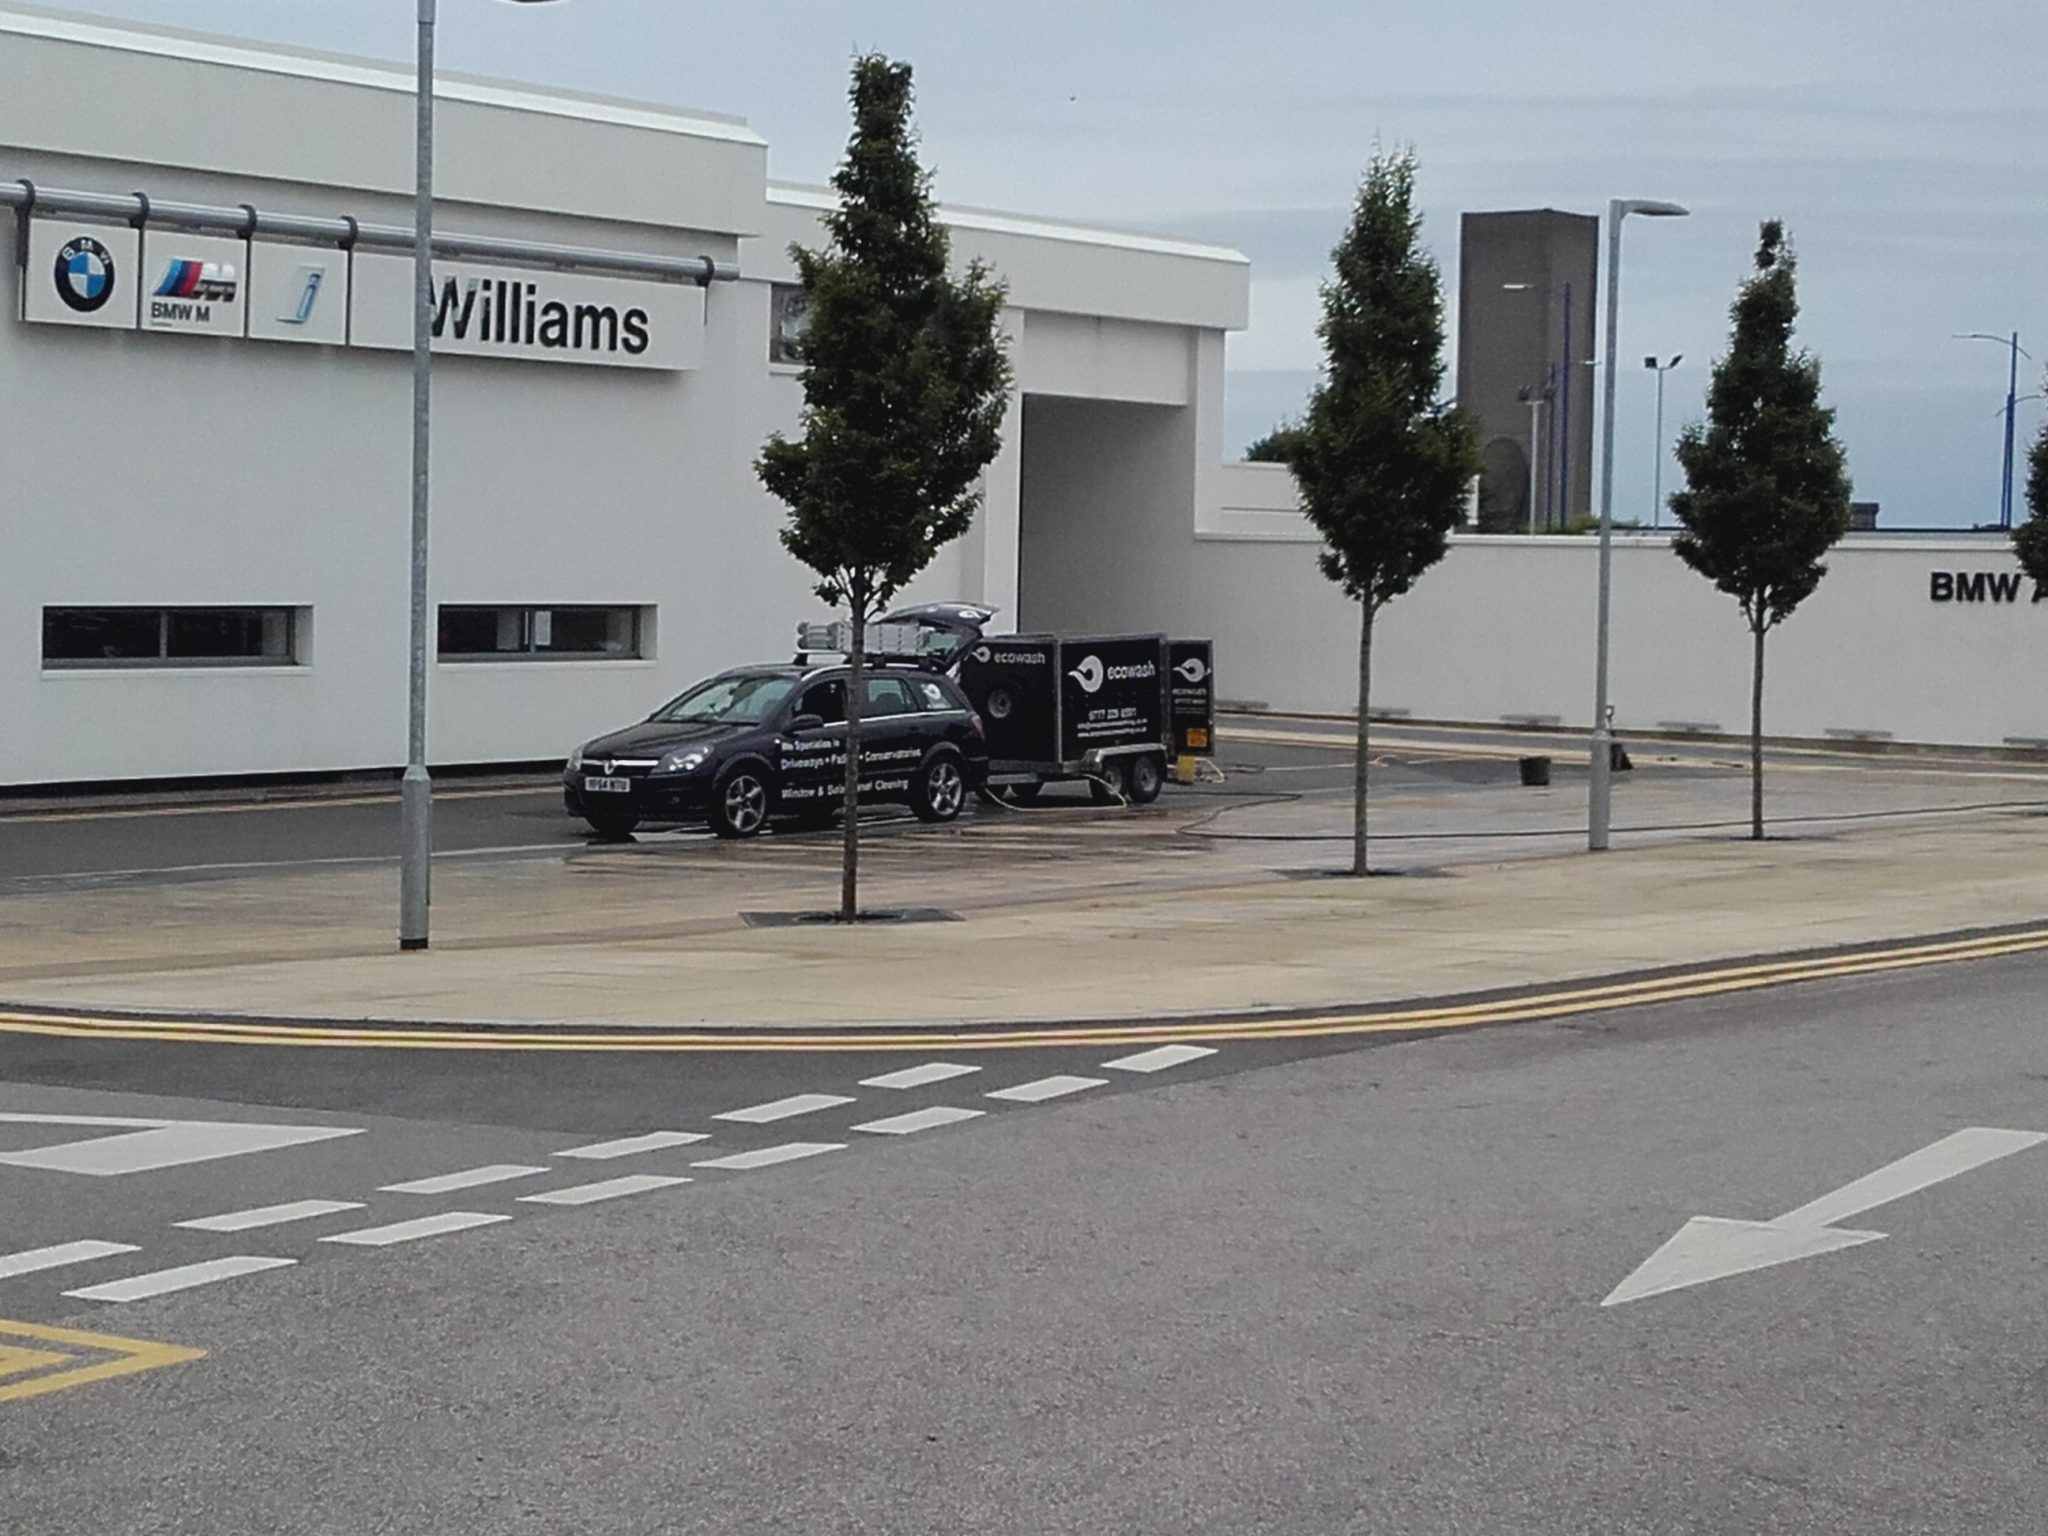 20160706_130524 Williams BMW Liverpool - Forecourt Cleaning